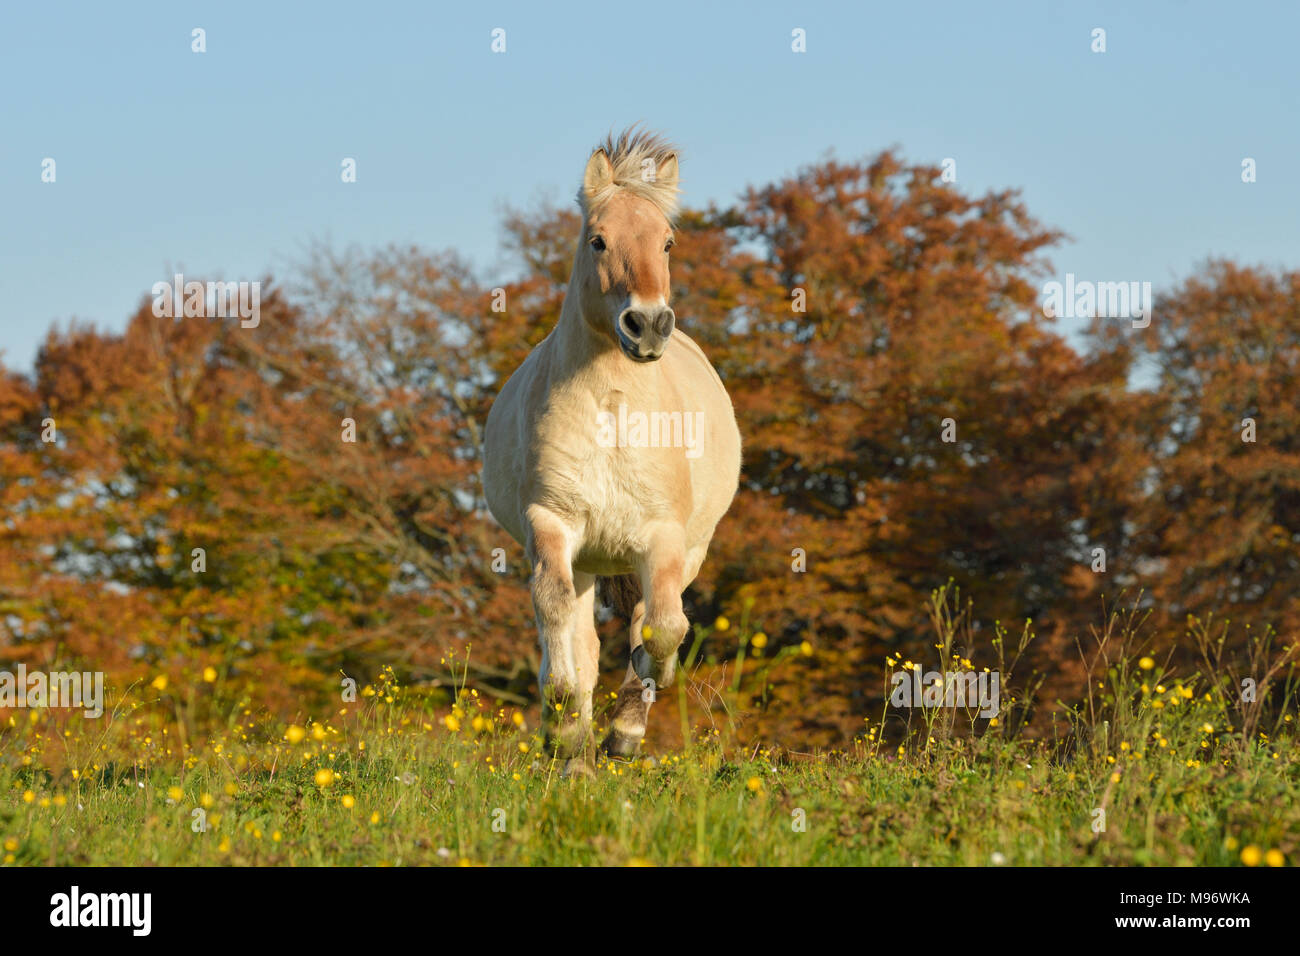 Norwegian Fjord horse cantering in the field in autumn - Stock Image